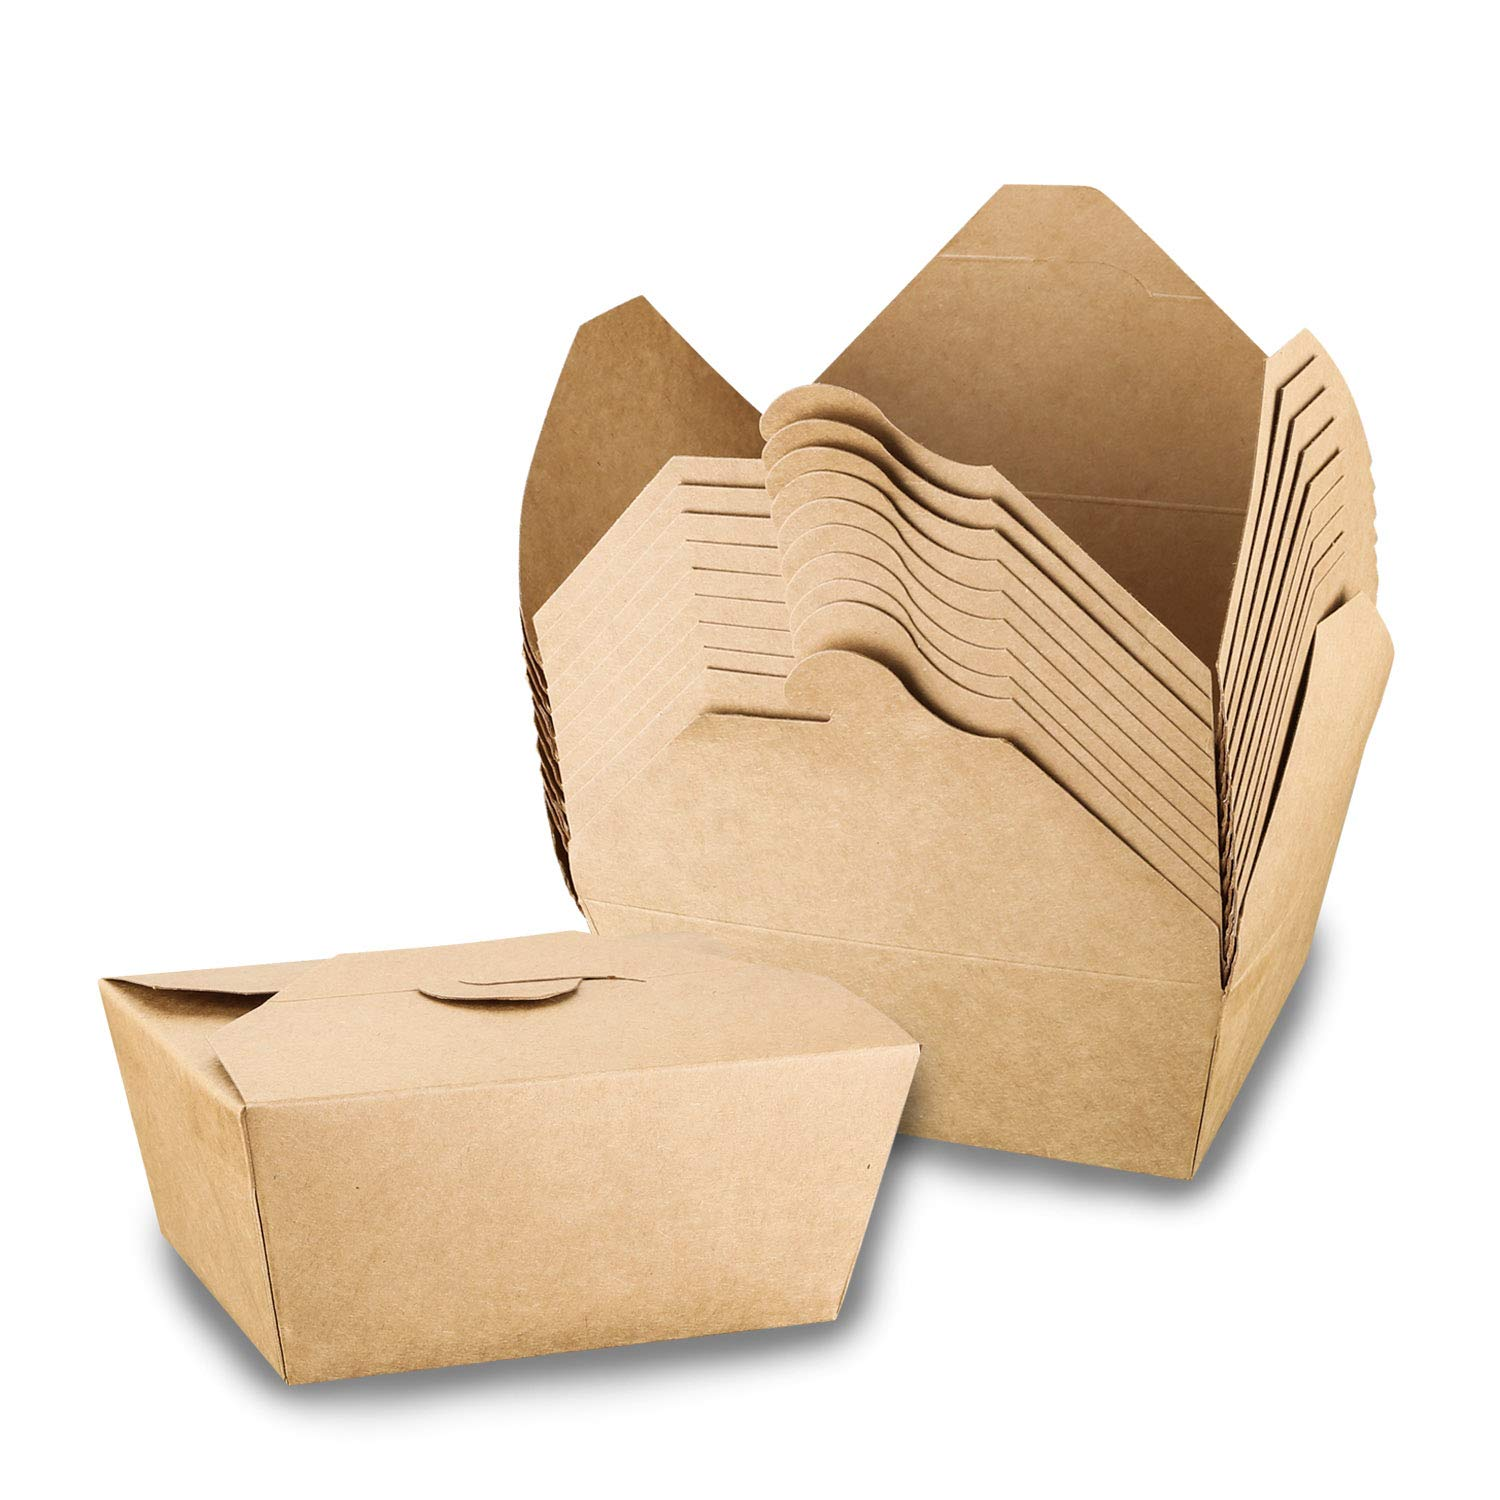 [40 Pack] Take Out Boxes, 47 oz Microwaveable Kraft Brown to Go Boxes - Leak and Grease Resistant Food Containers, Recyclable Lunch Box for Restaurant, Catering and Parties